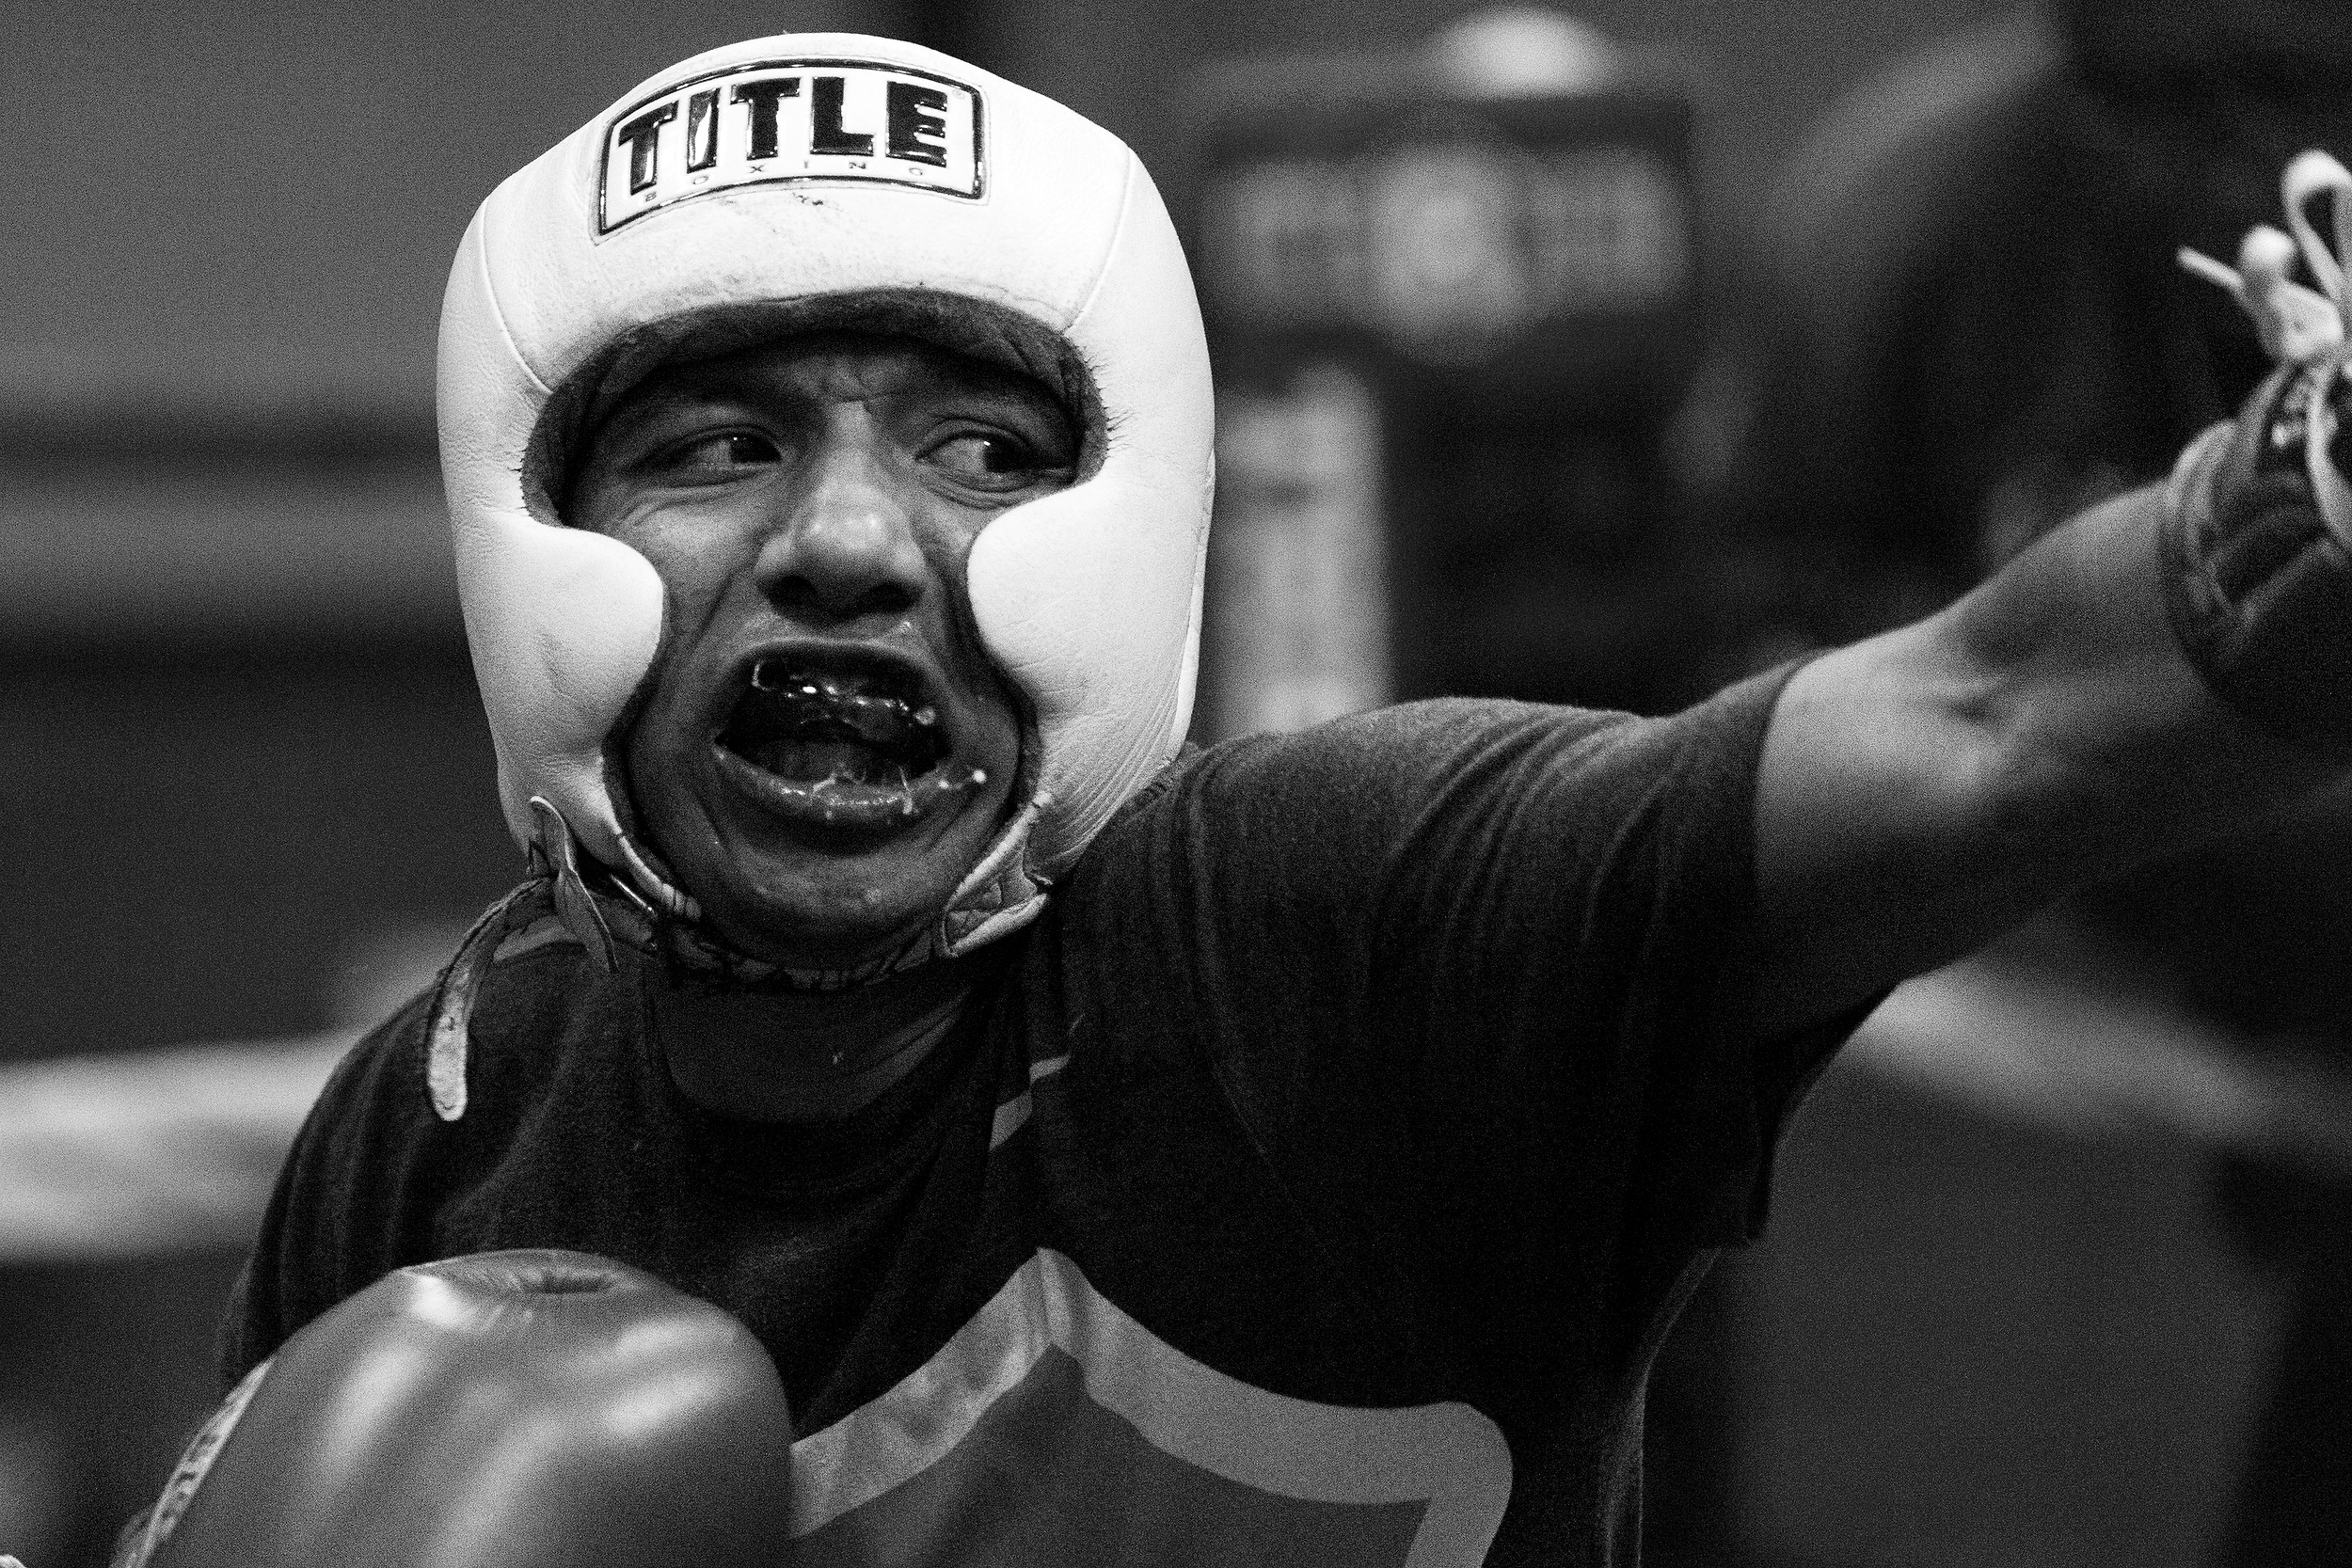 """Santiago """"Santos"""" Garcia spars at Eastside Boxing Club in Kalamazoo, Mich. on May 25, 2016. Garcia won the Michigan Golden Glove novice class state championship at the 108 pound weight class in 2015 and 2016. (Bryan Bennett 